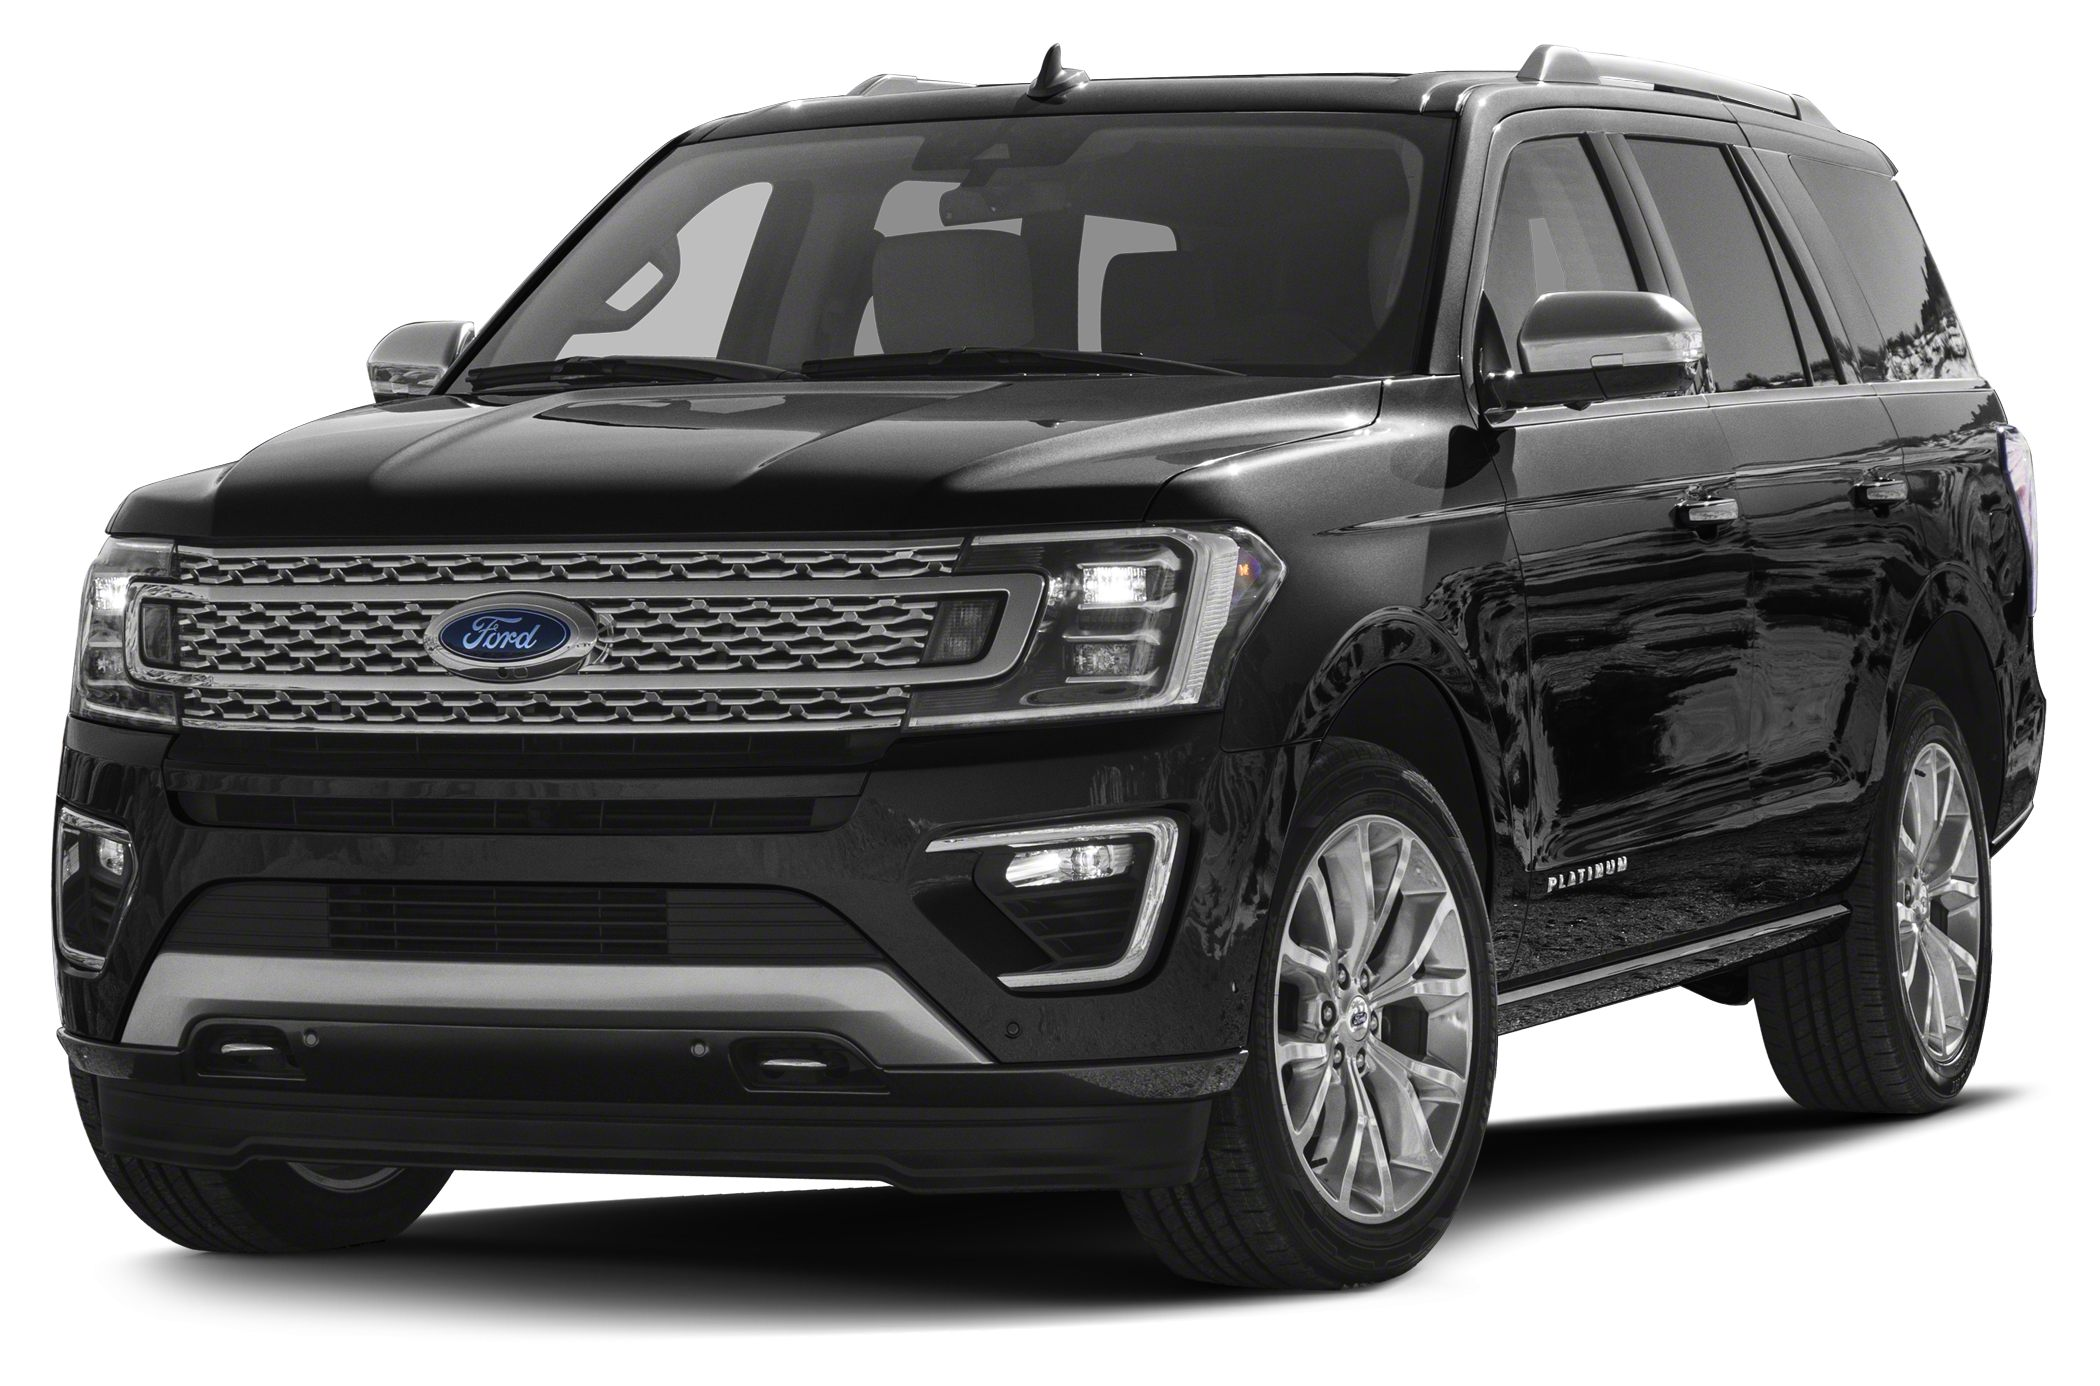 2018 ford expedition spied looking stylish autoblog. Black Bedroom Furniture Sets. Home Design Ideas